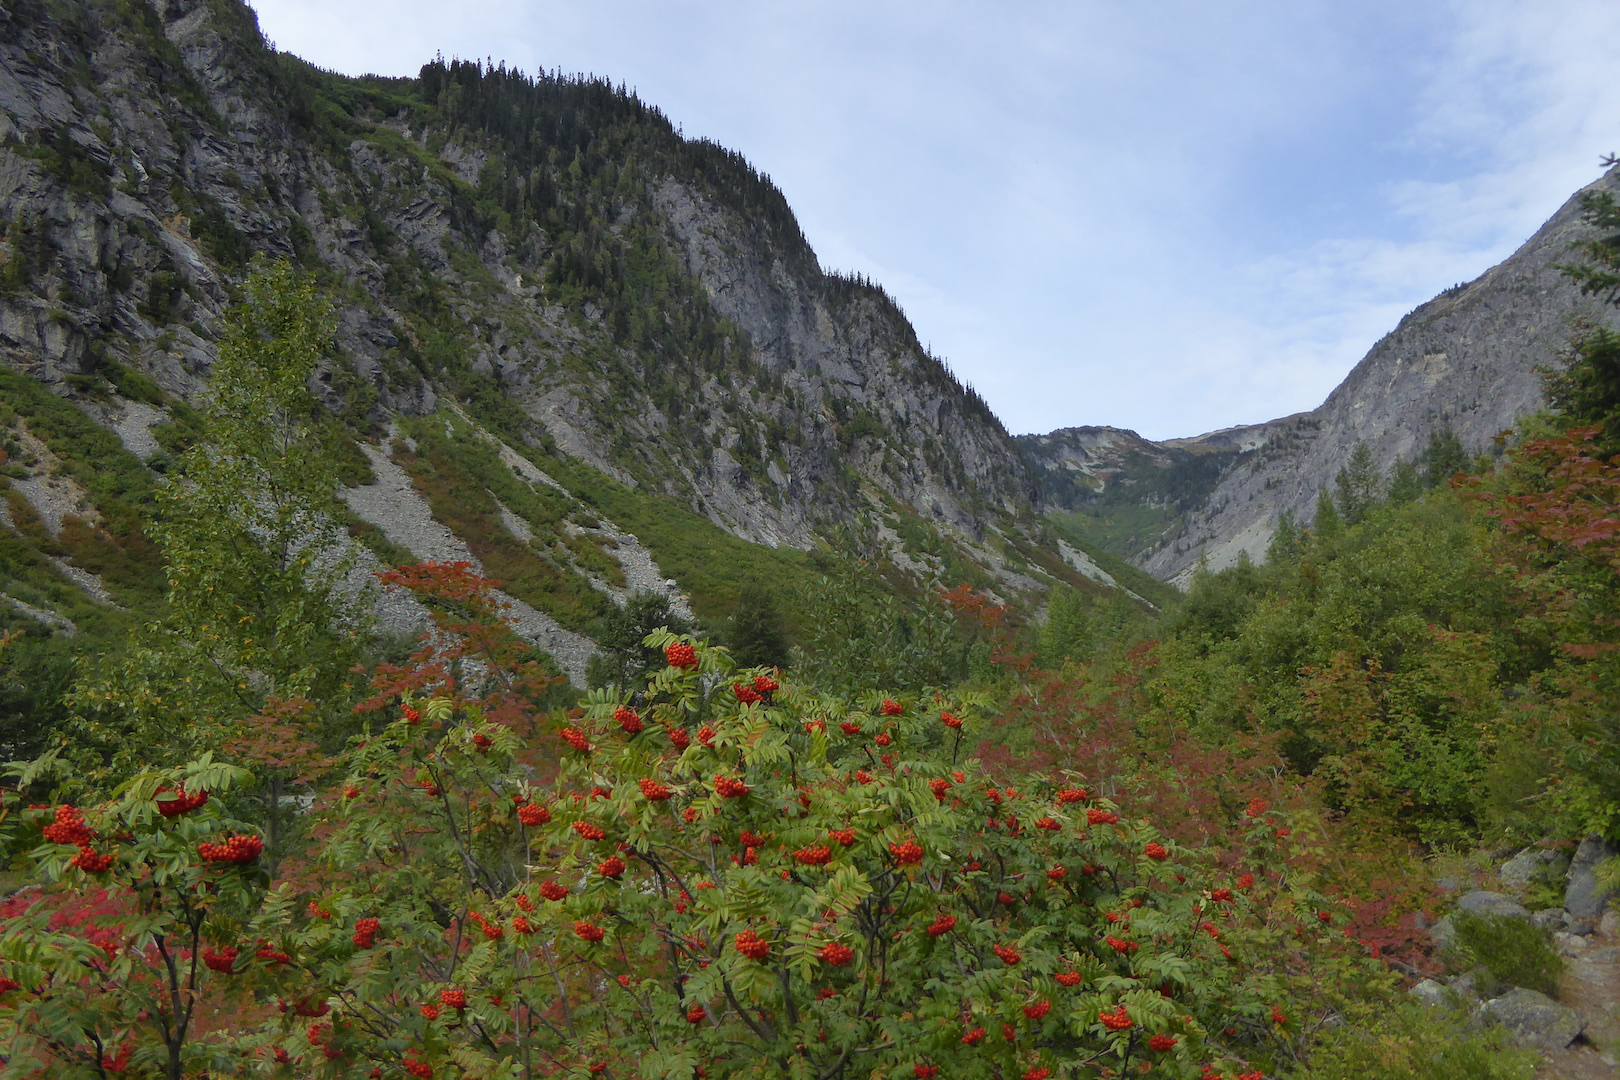 Mountain valley scene. Steep walled mountains with red-berried shrub in foreground.